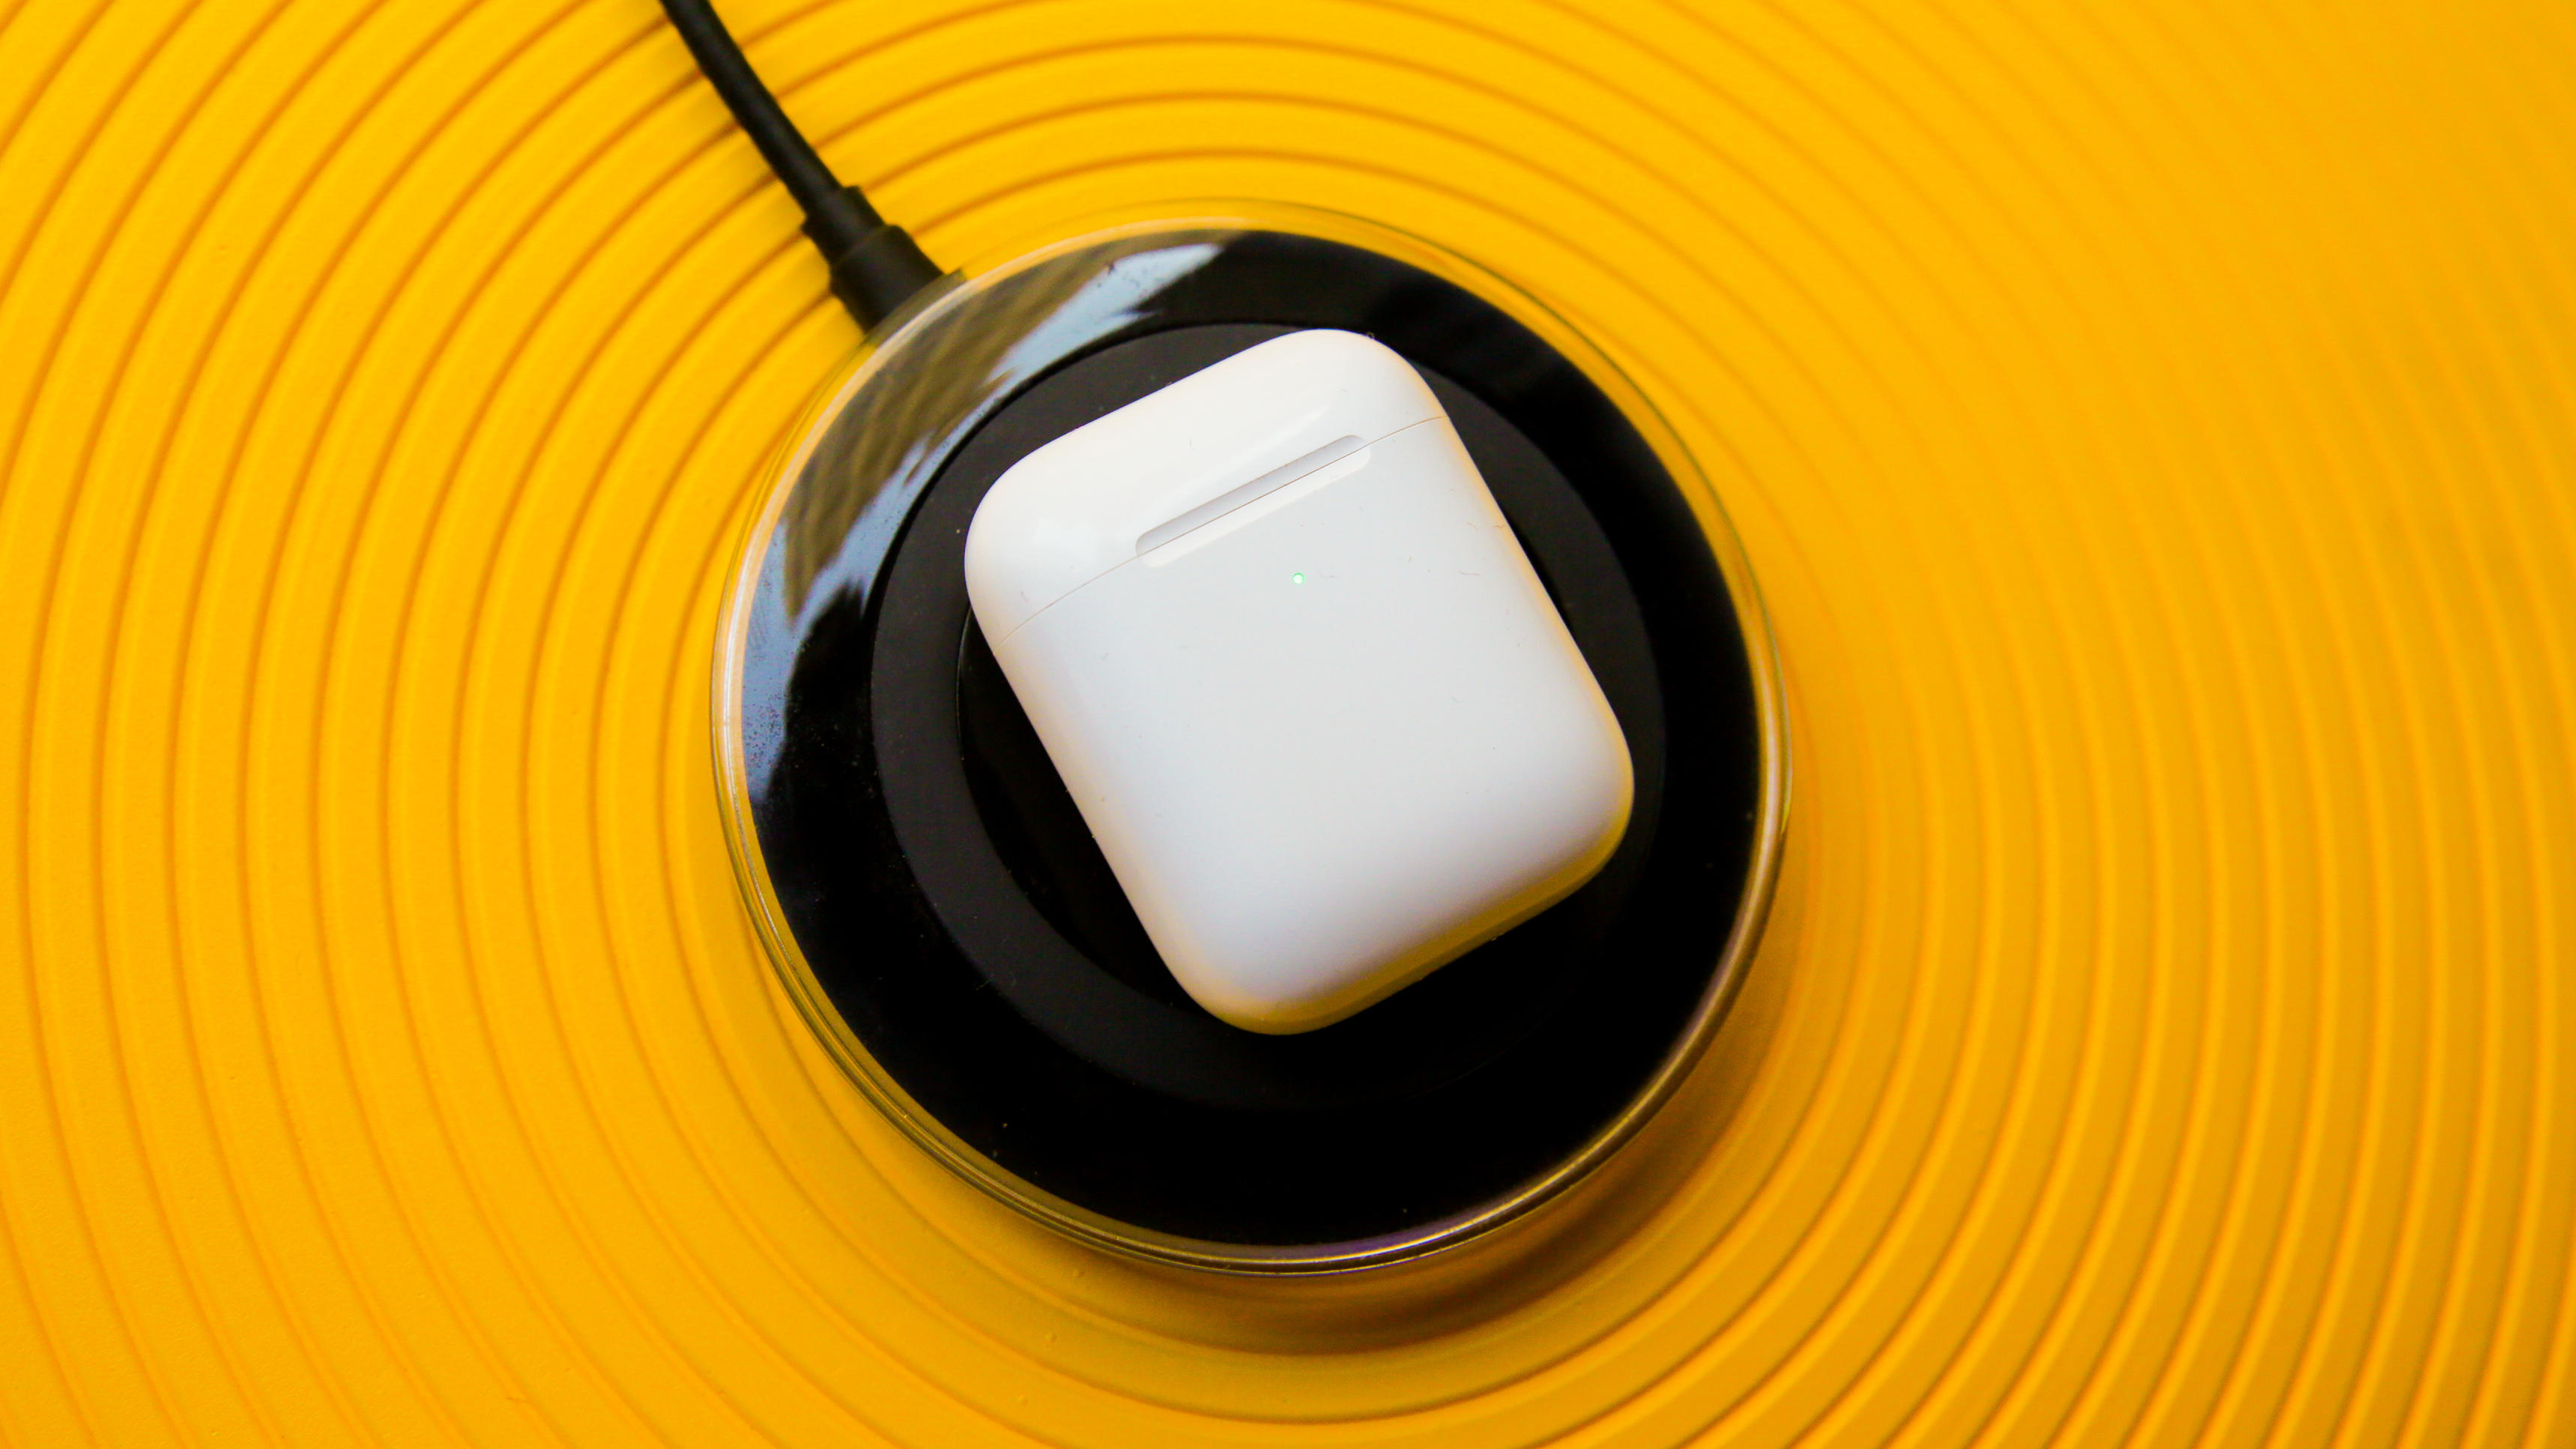 03-airpods-2nd-generation